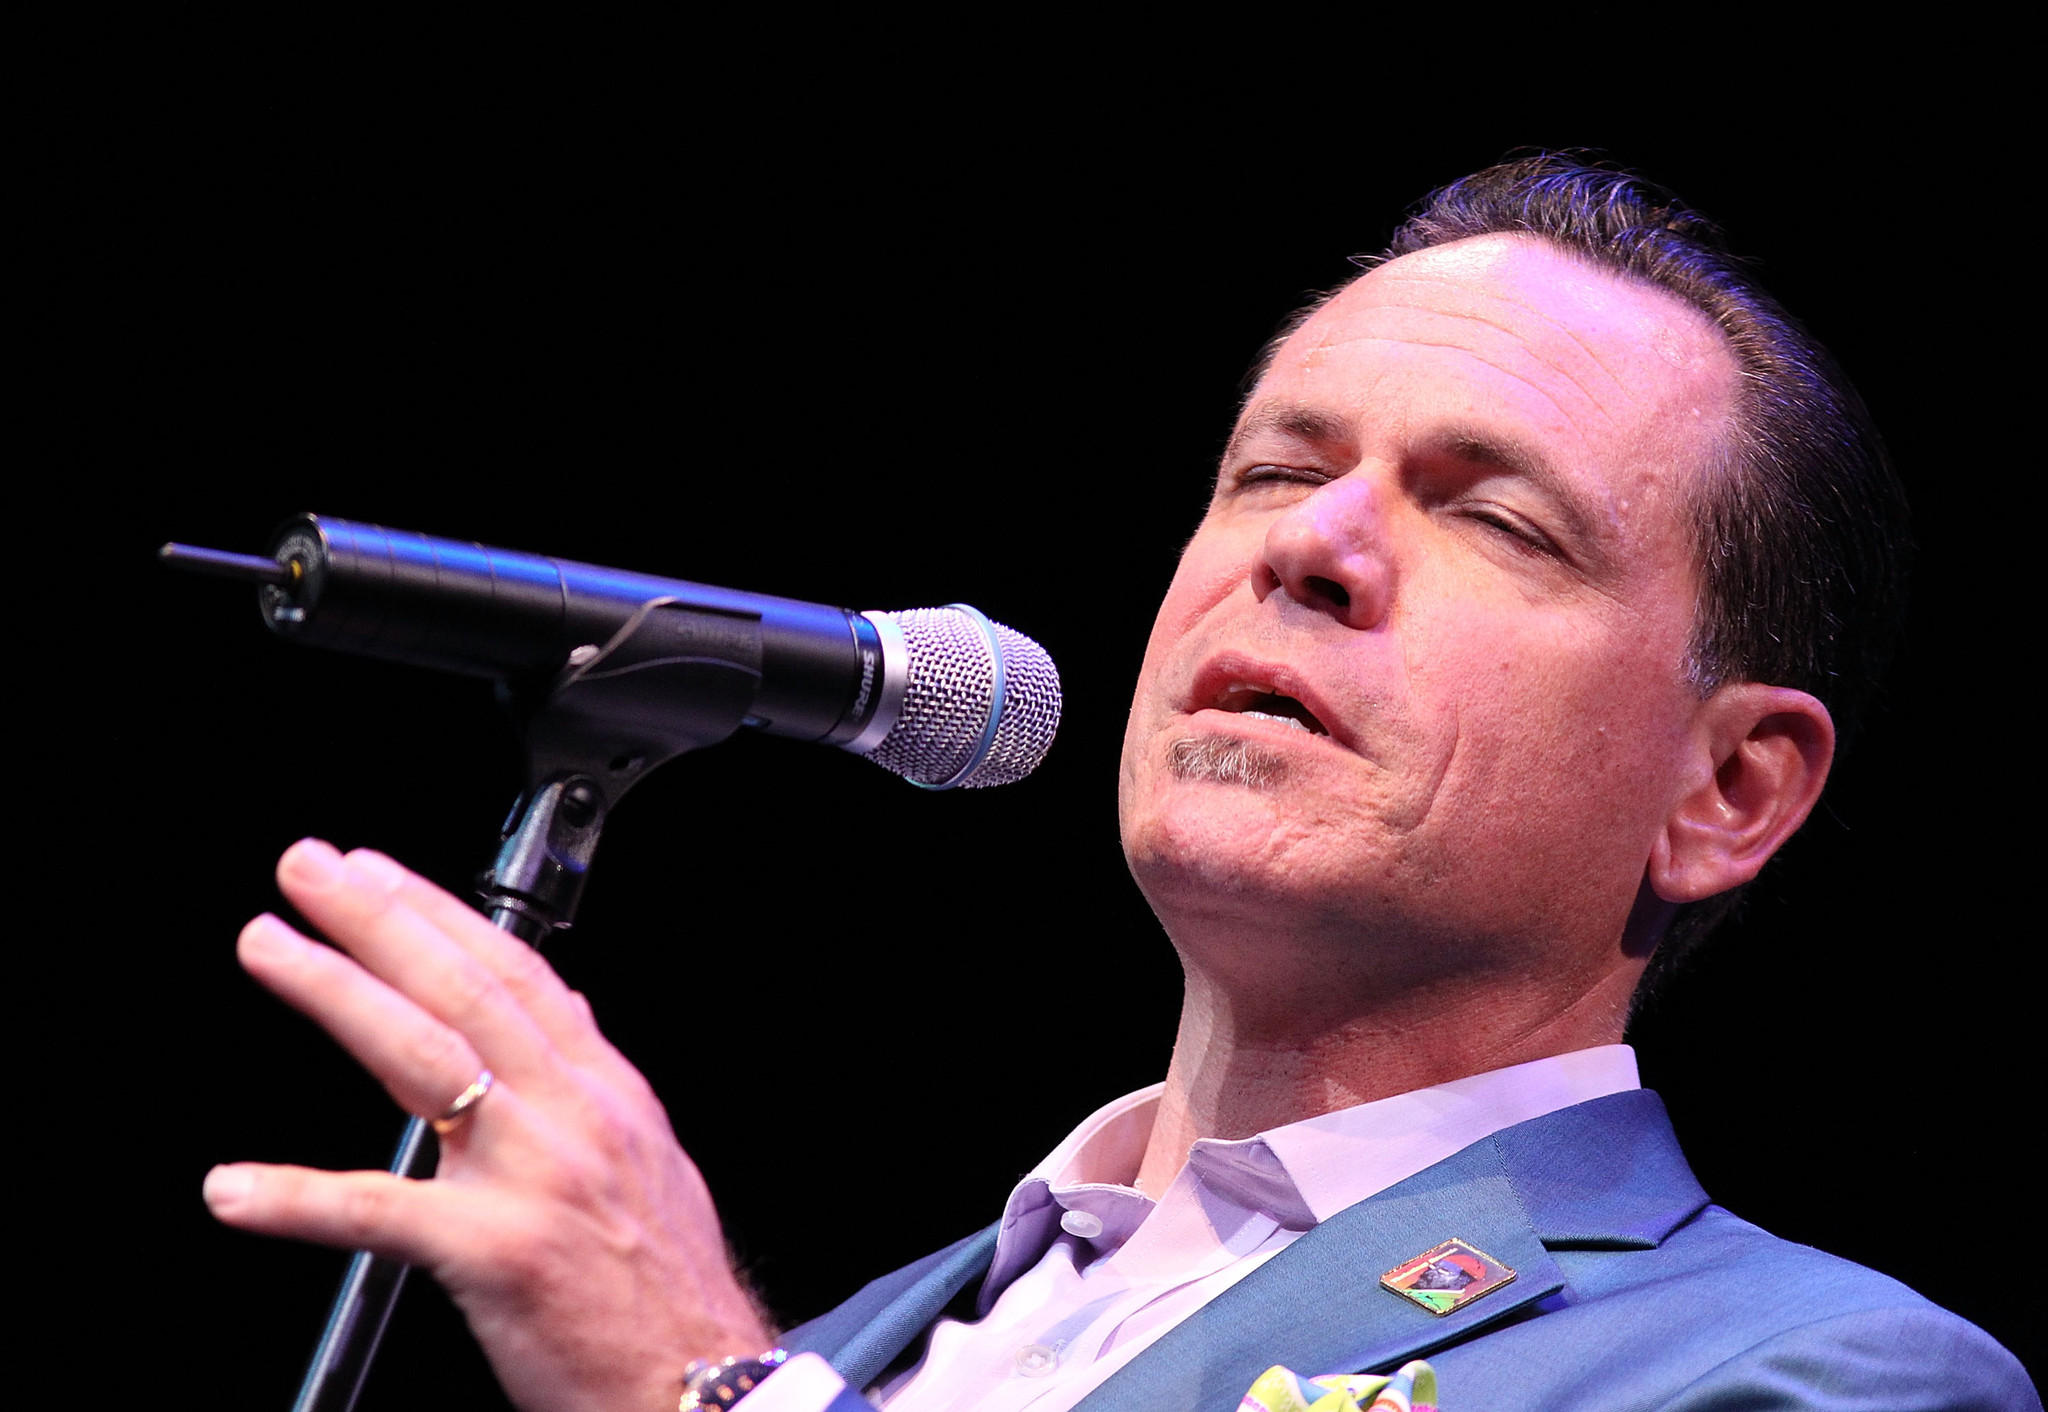 chi-kurt-elling-jazz-20131224-001.jpg